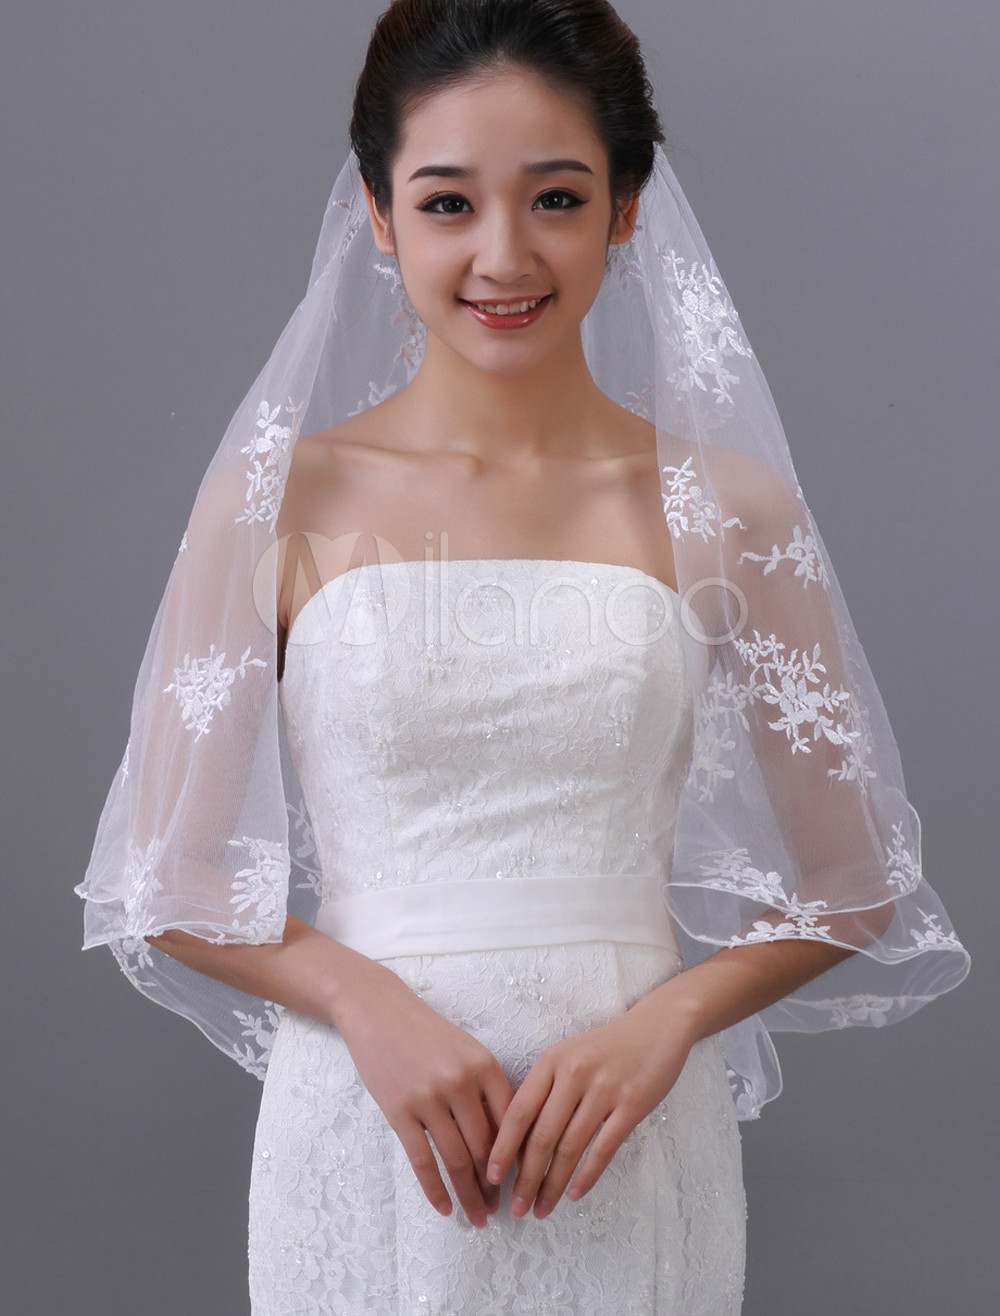 White One-Tier Embroidery Tulle Bridal Wedding Veil